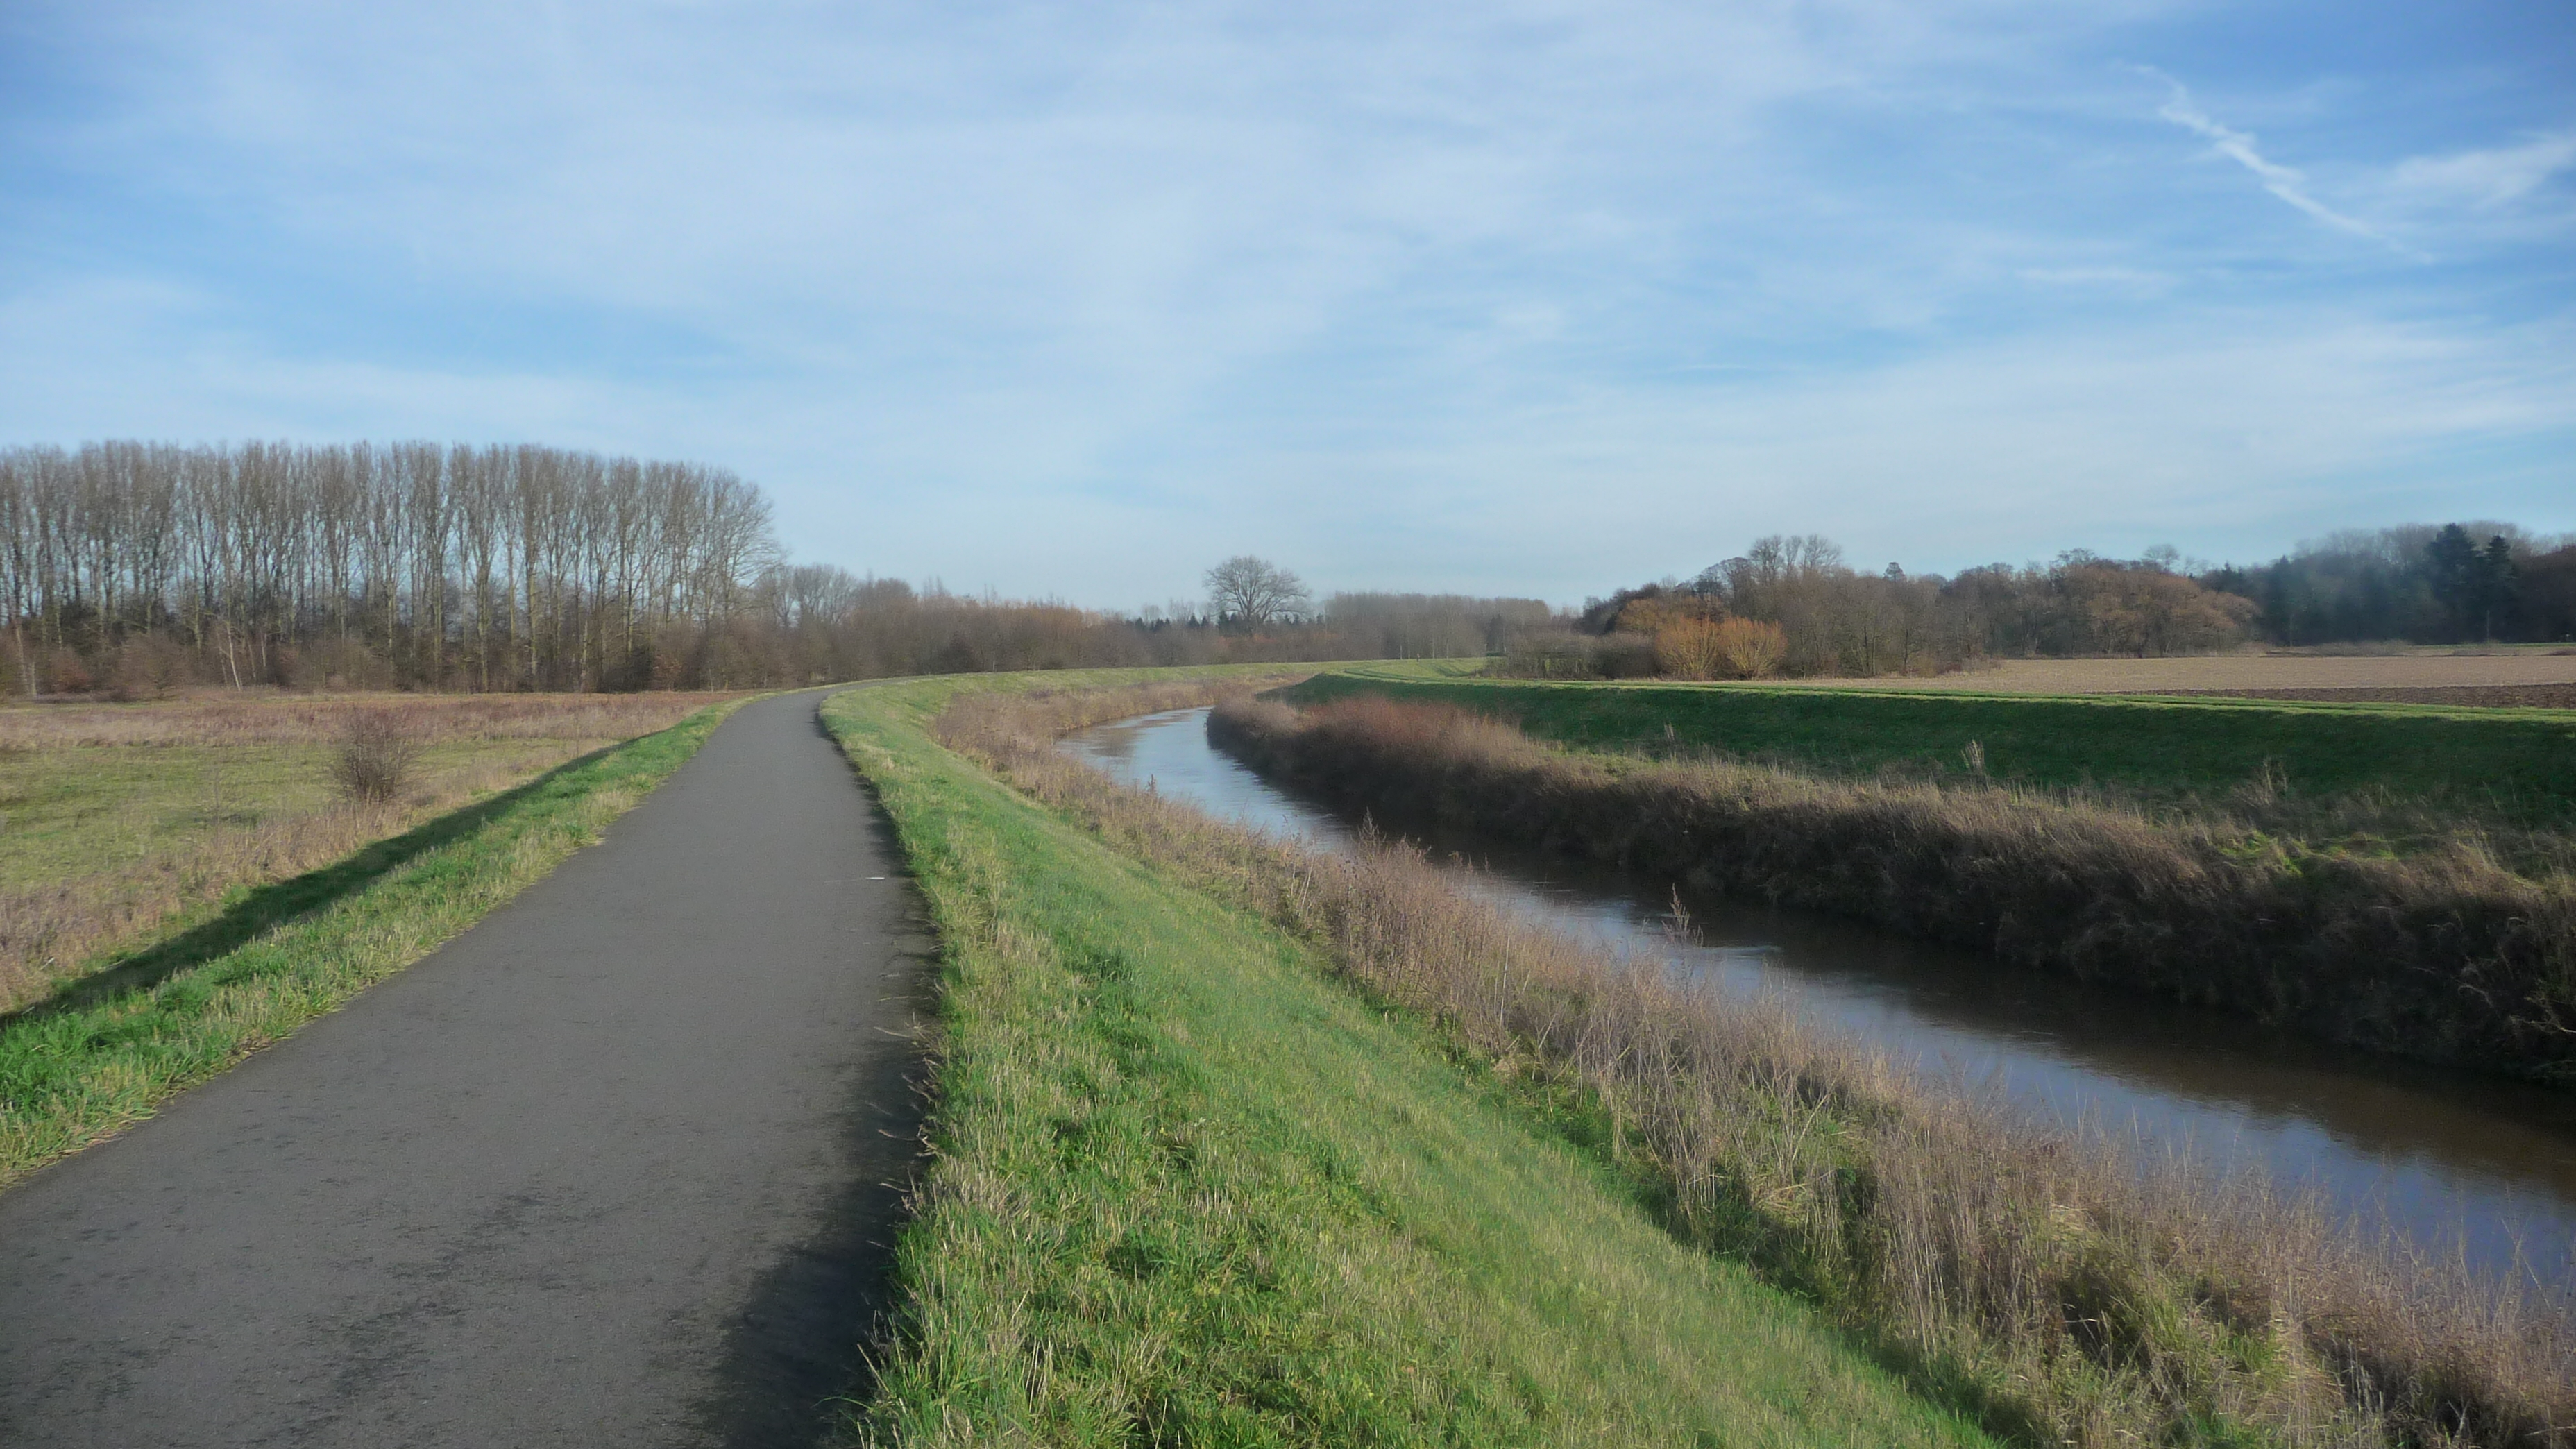 cycle path along the river